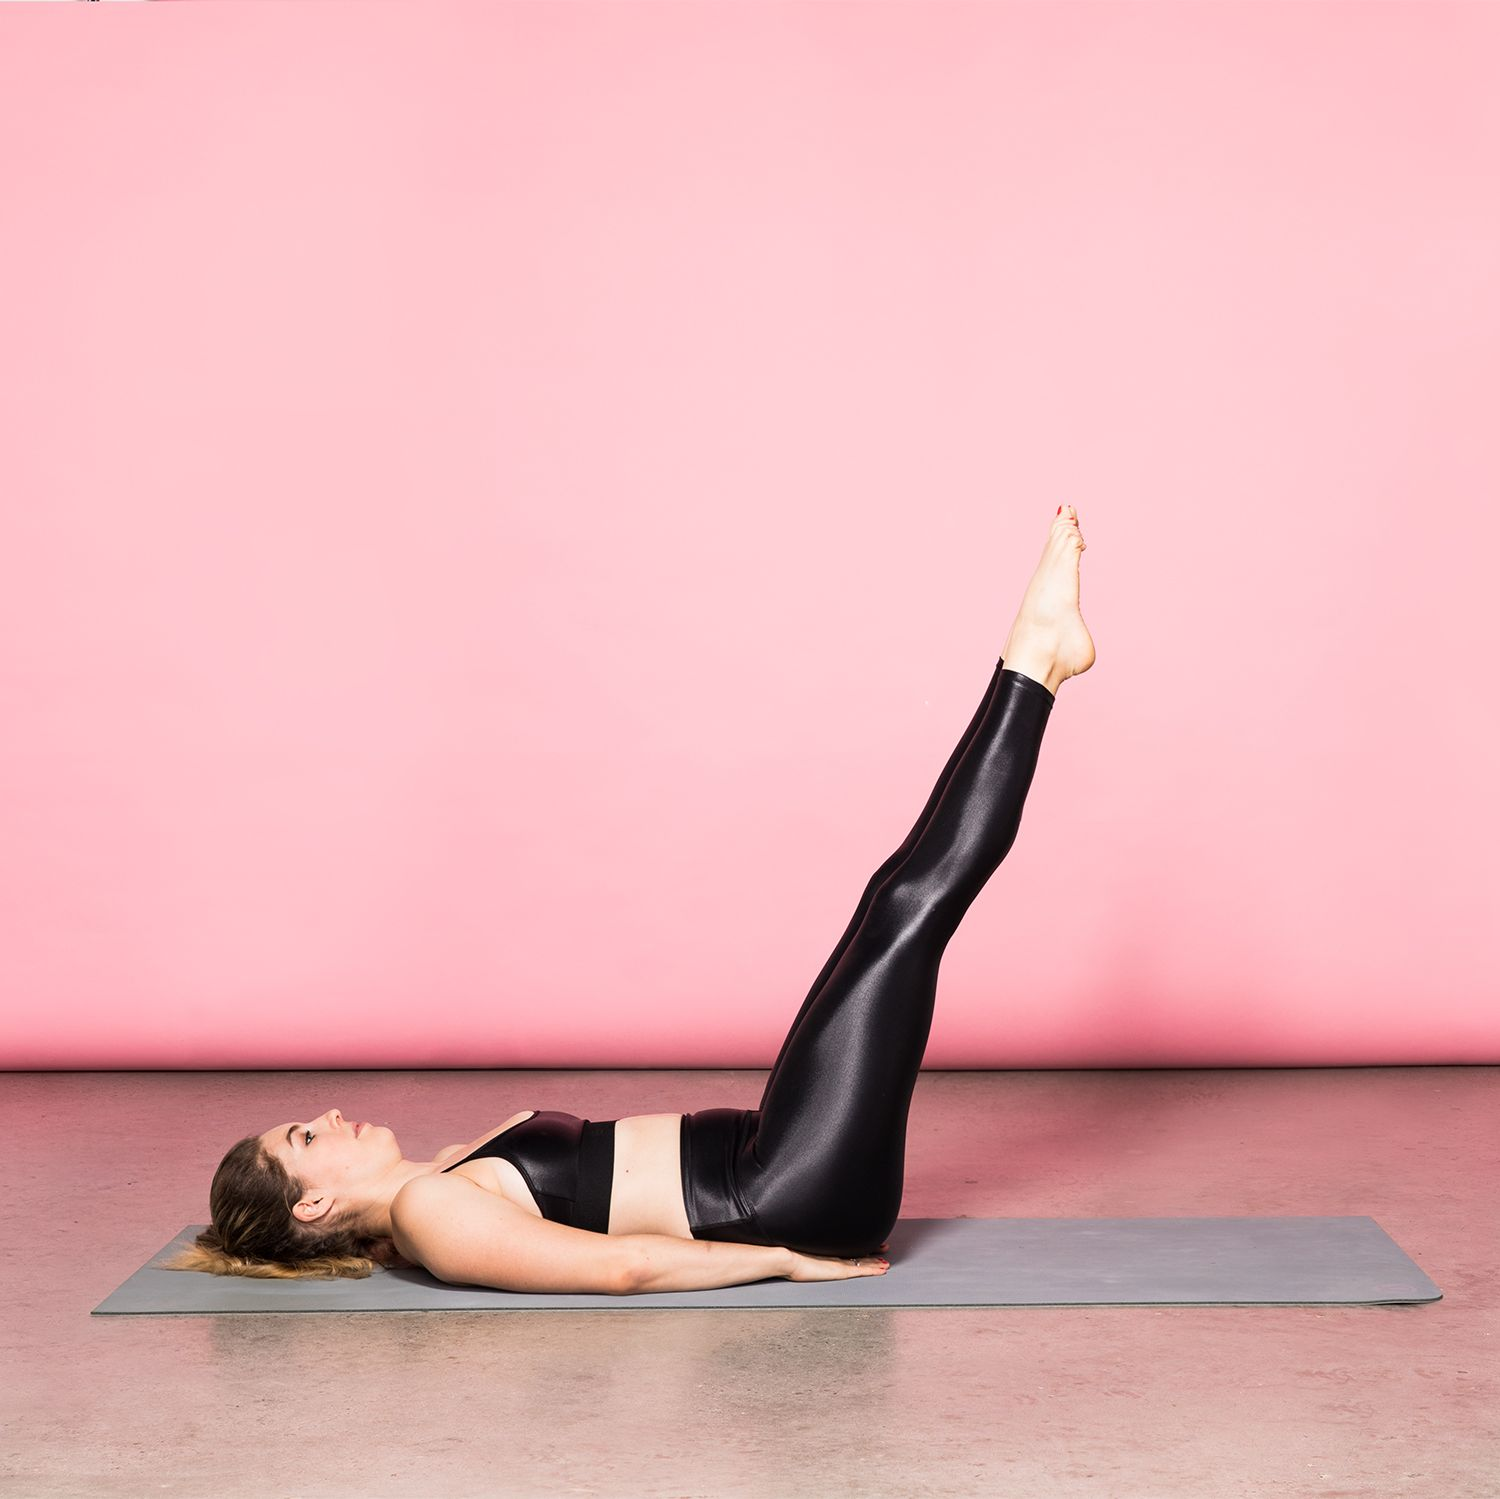 How To Do Lying Leg Raises To Seriously Tone Your Lower Abs